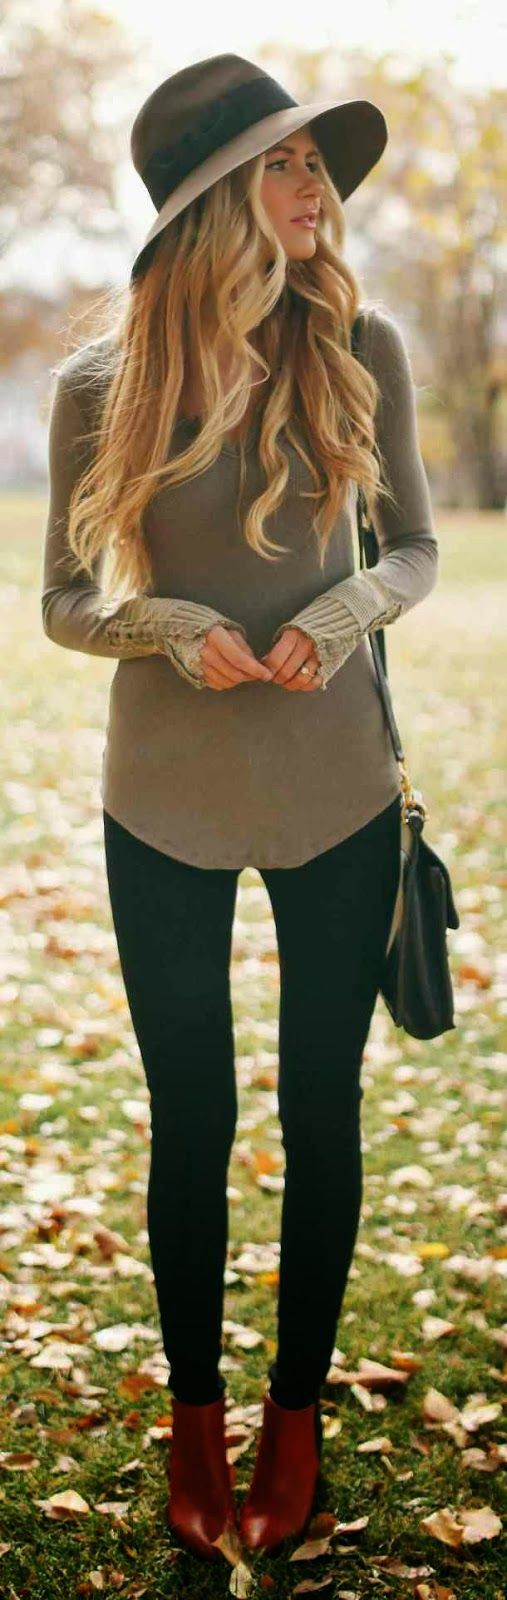 Fall street fashion style in brown and black | Women Fashion Galaxy. Love this whole outfit.